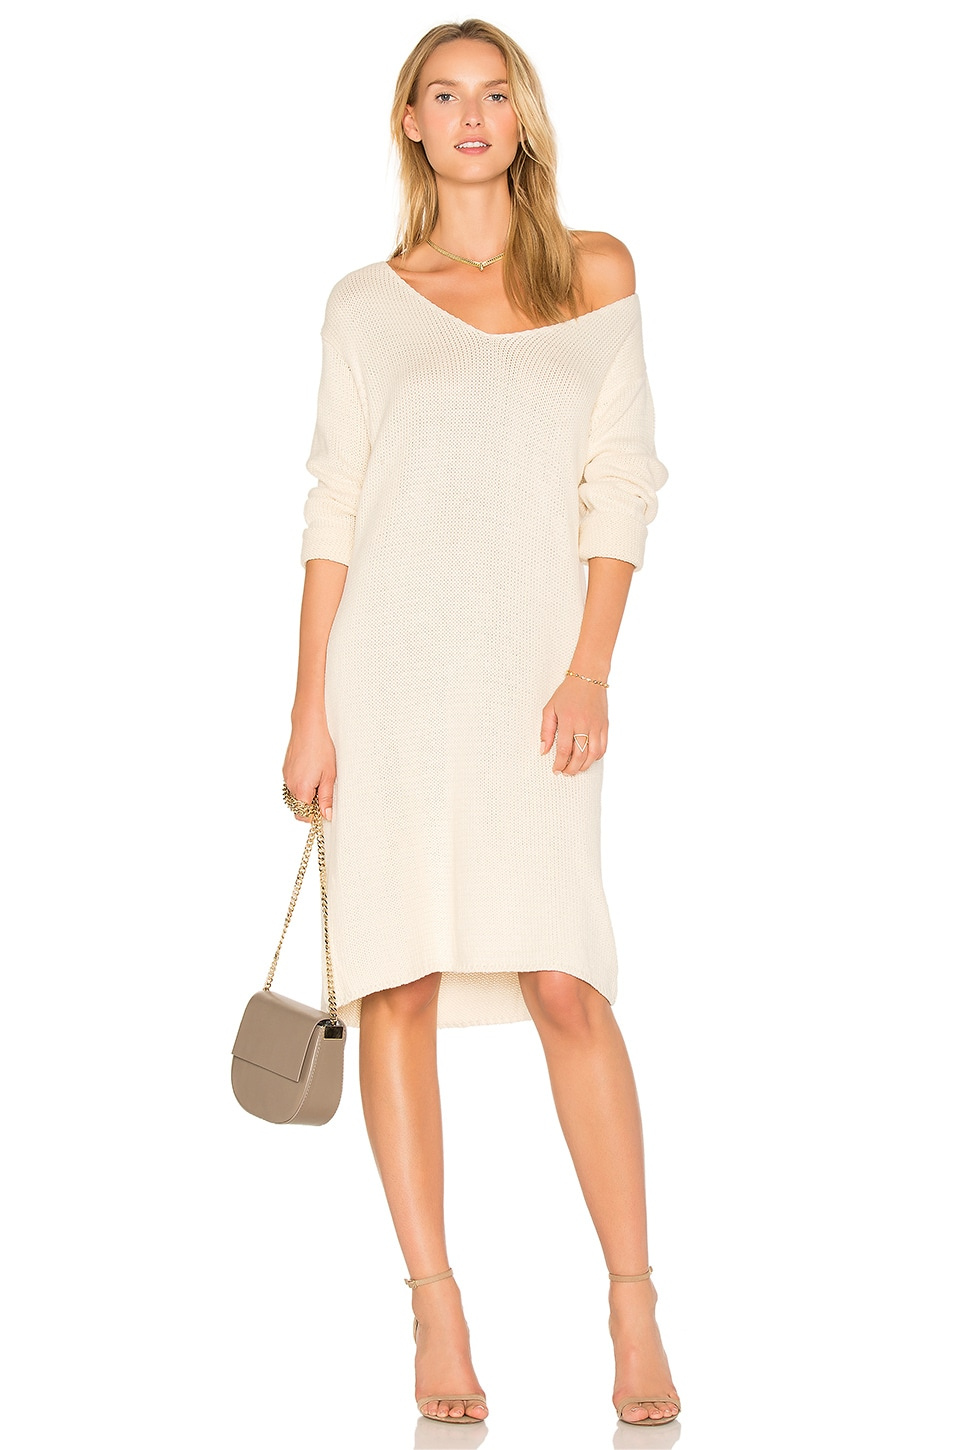 TROIS Daria Knit Dress in Bone